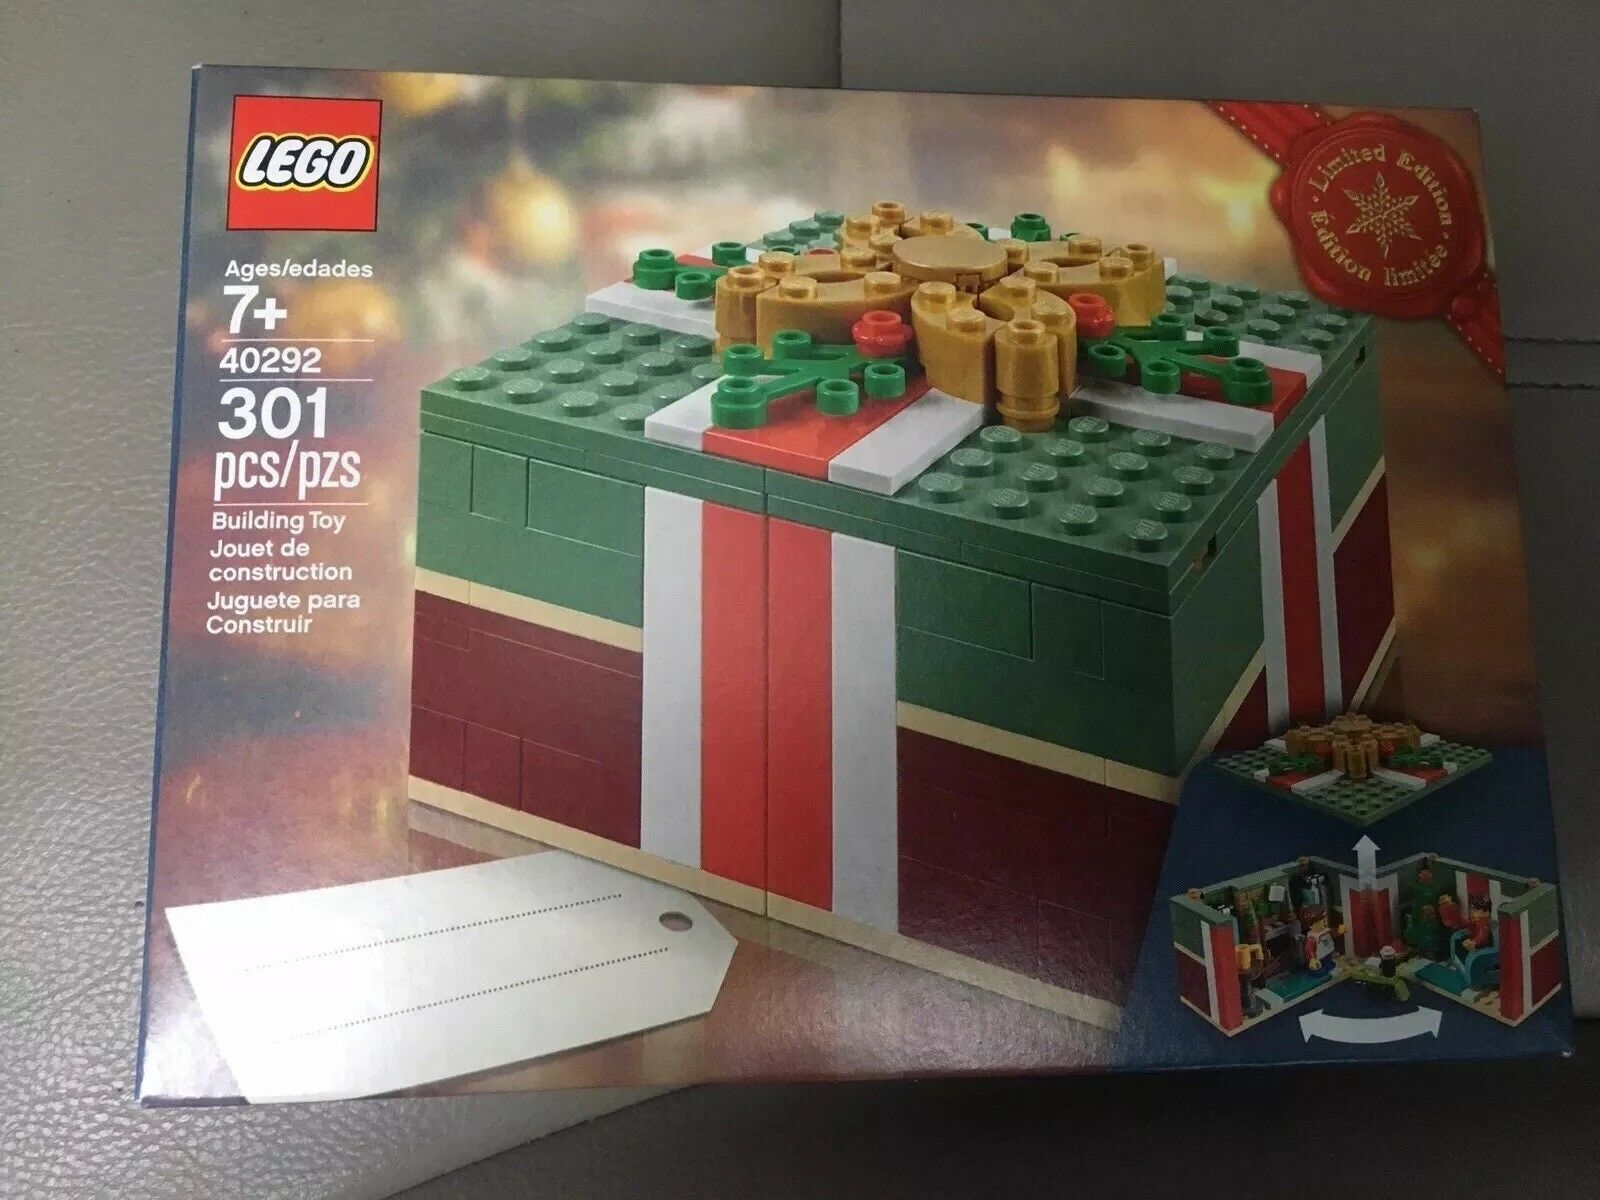 New LEGO Christmas Gift 40292 Buildable Holiday Present Box Exclusive